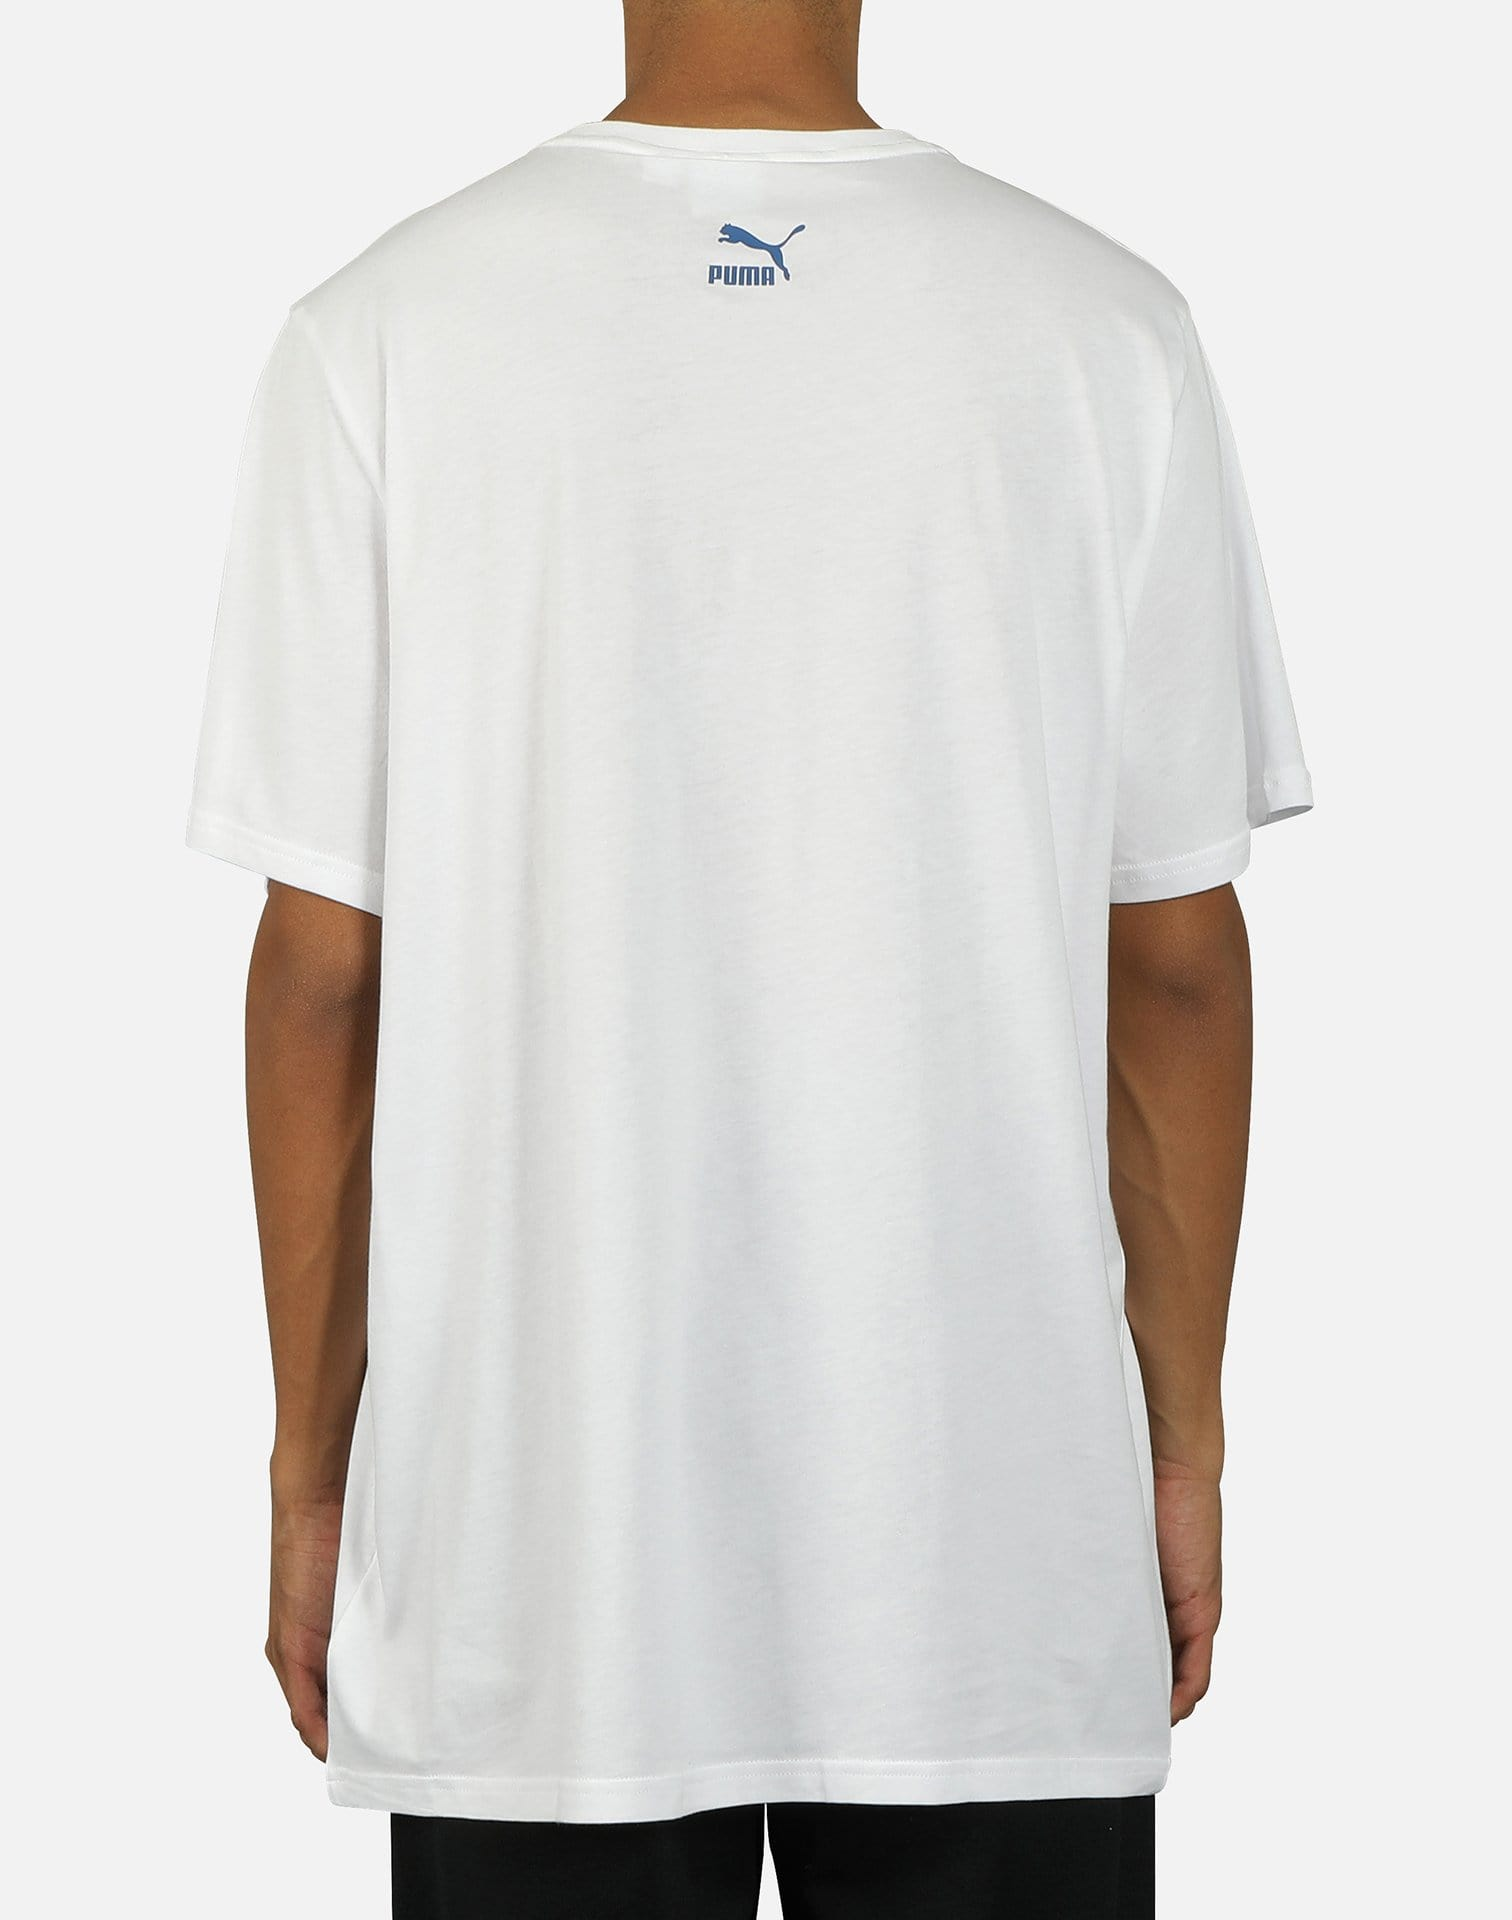 PUMA Men's XTG Trail Graphic Tee